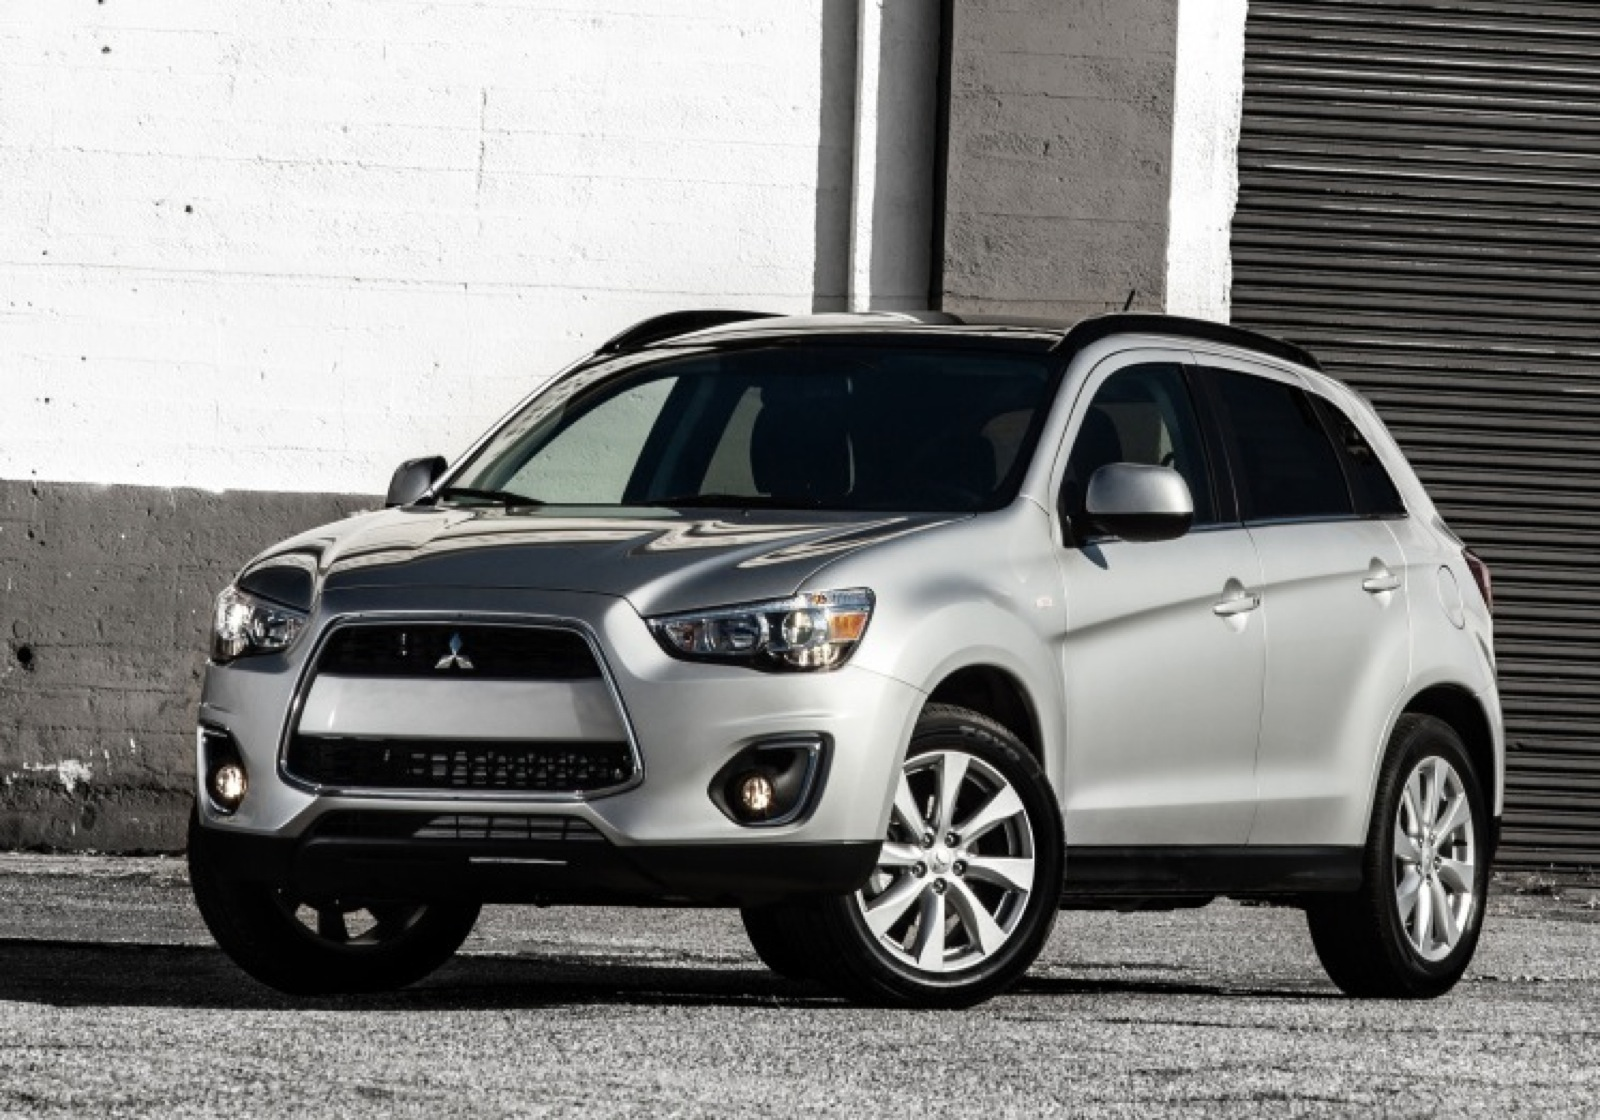 2014 mitsubishi outlander sport review ratings specs prices and photos the car connection. Black Bedroom Furniture Sets. Home Design Ideas